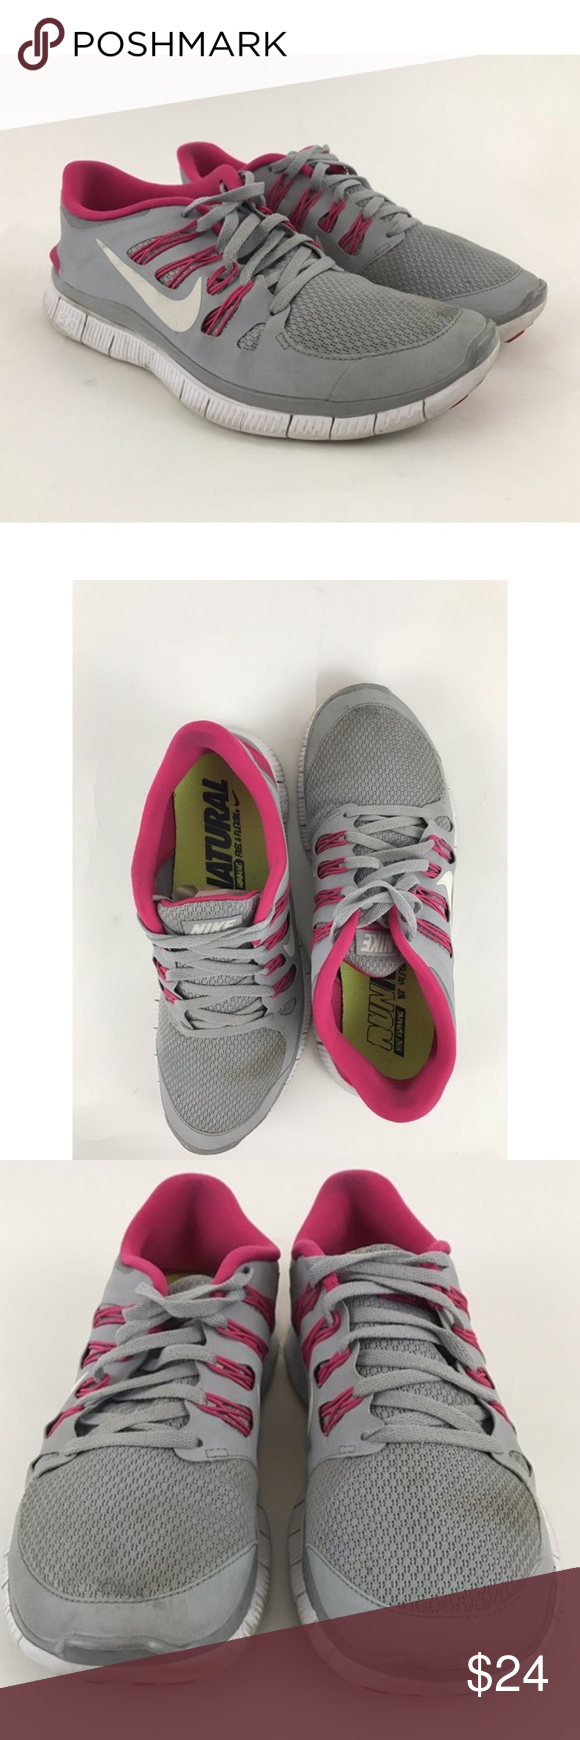 online store 1d1fd 03efa Nike Free 5.0+ Wolf Grey Pink Force White Sneaker Pre-owned Nike Free 5.0+ Wolf  Grey Pink Force White Women s Sneaker 8.5 580591-061 Gently worn Running ...